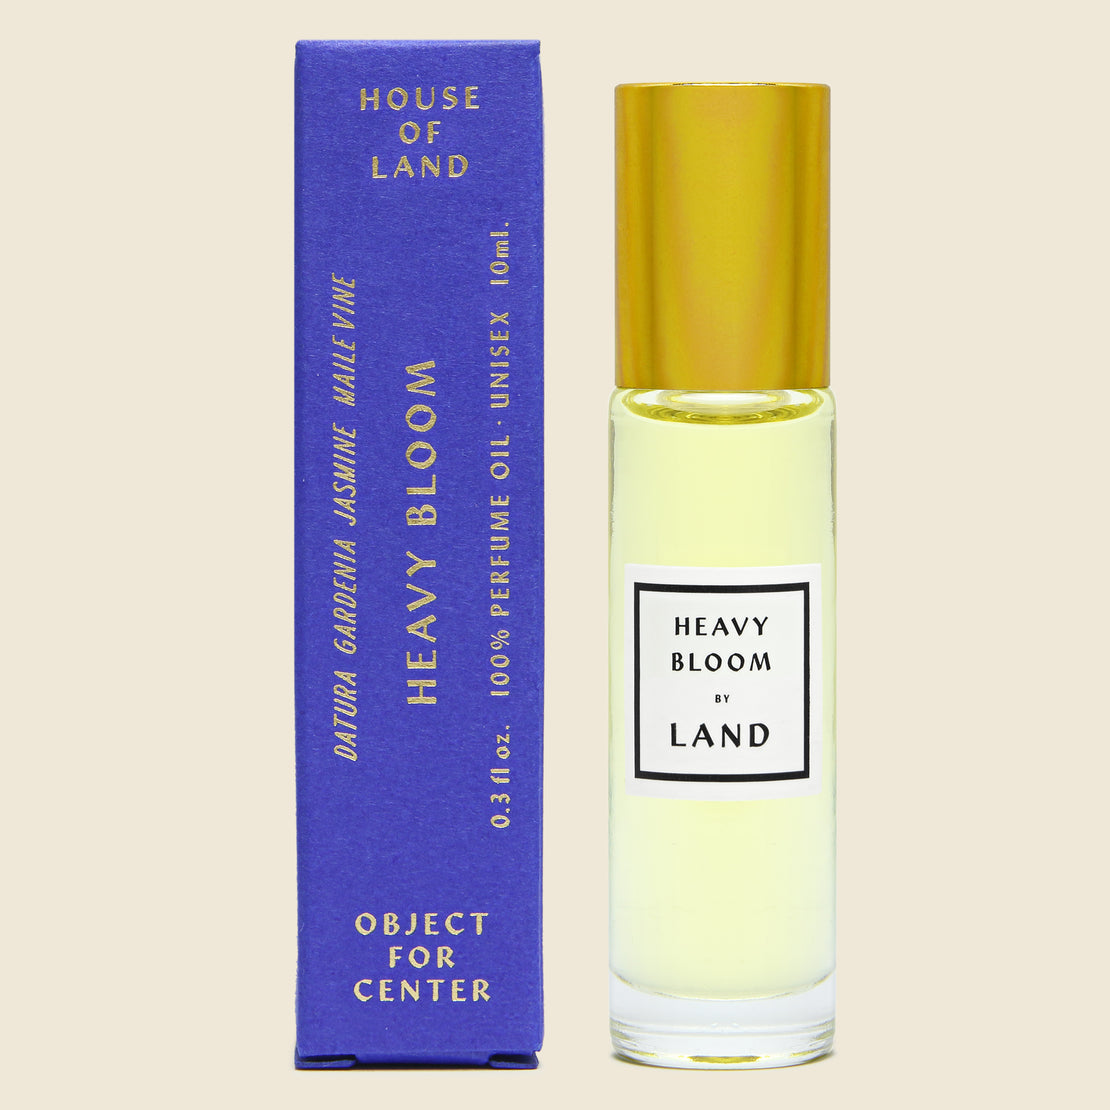 House of LAND Perfume Oil - Heavy Bloom